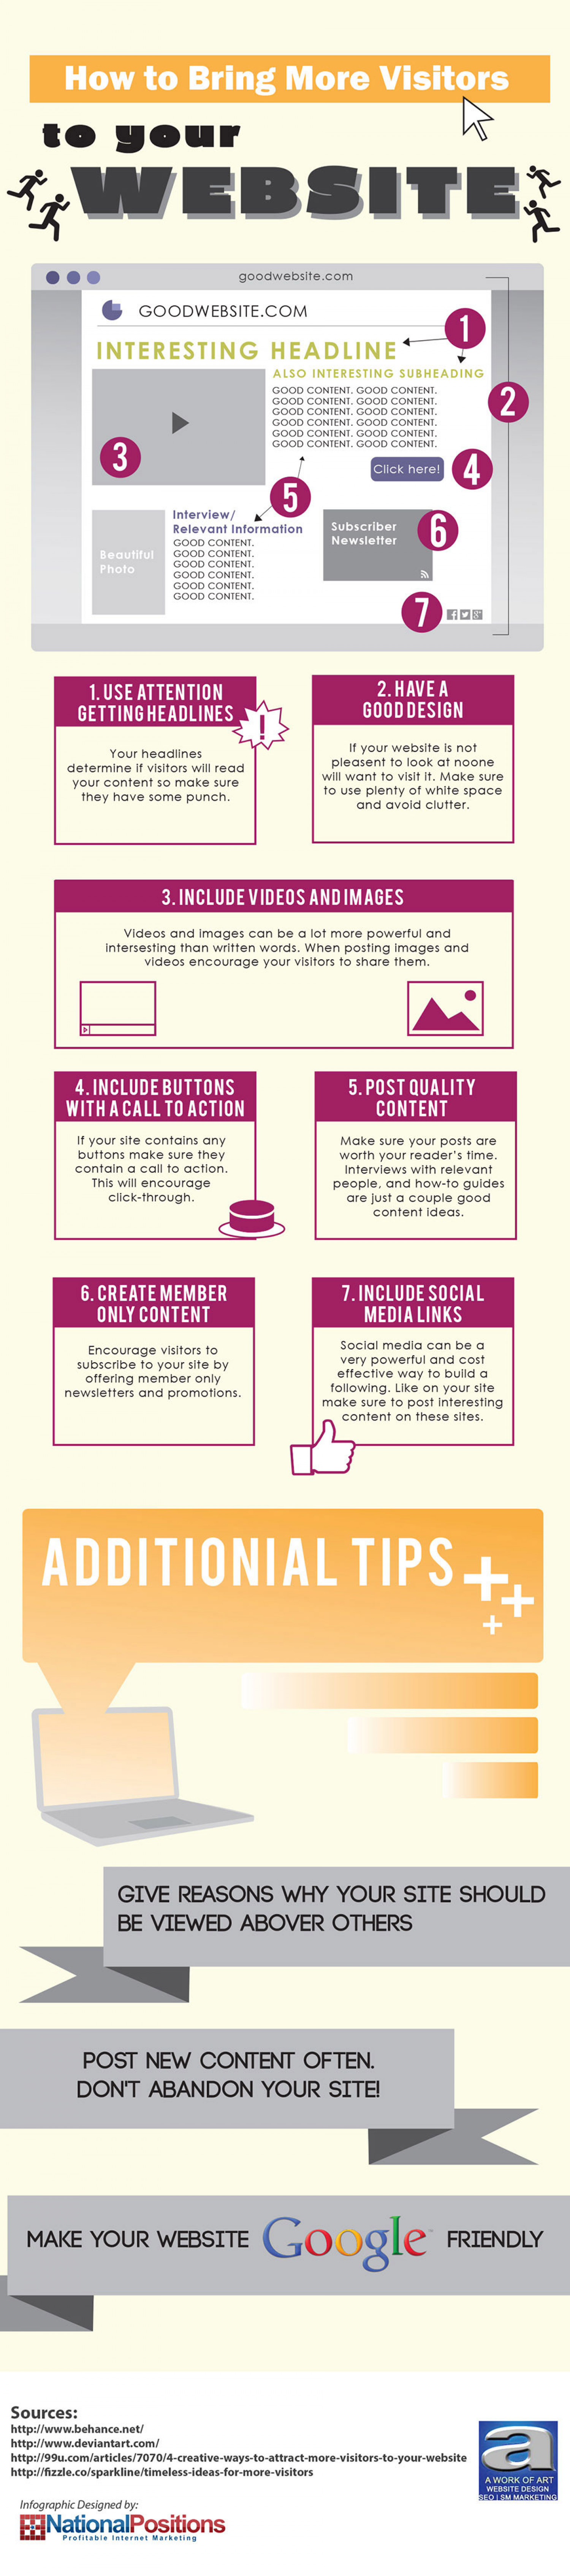 How to Bring More Visitors to Your Website Infographic